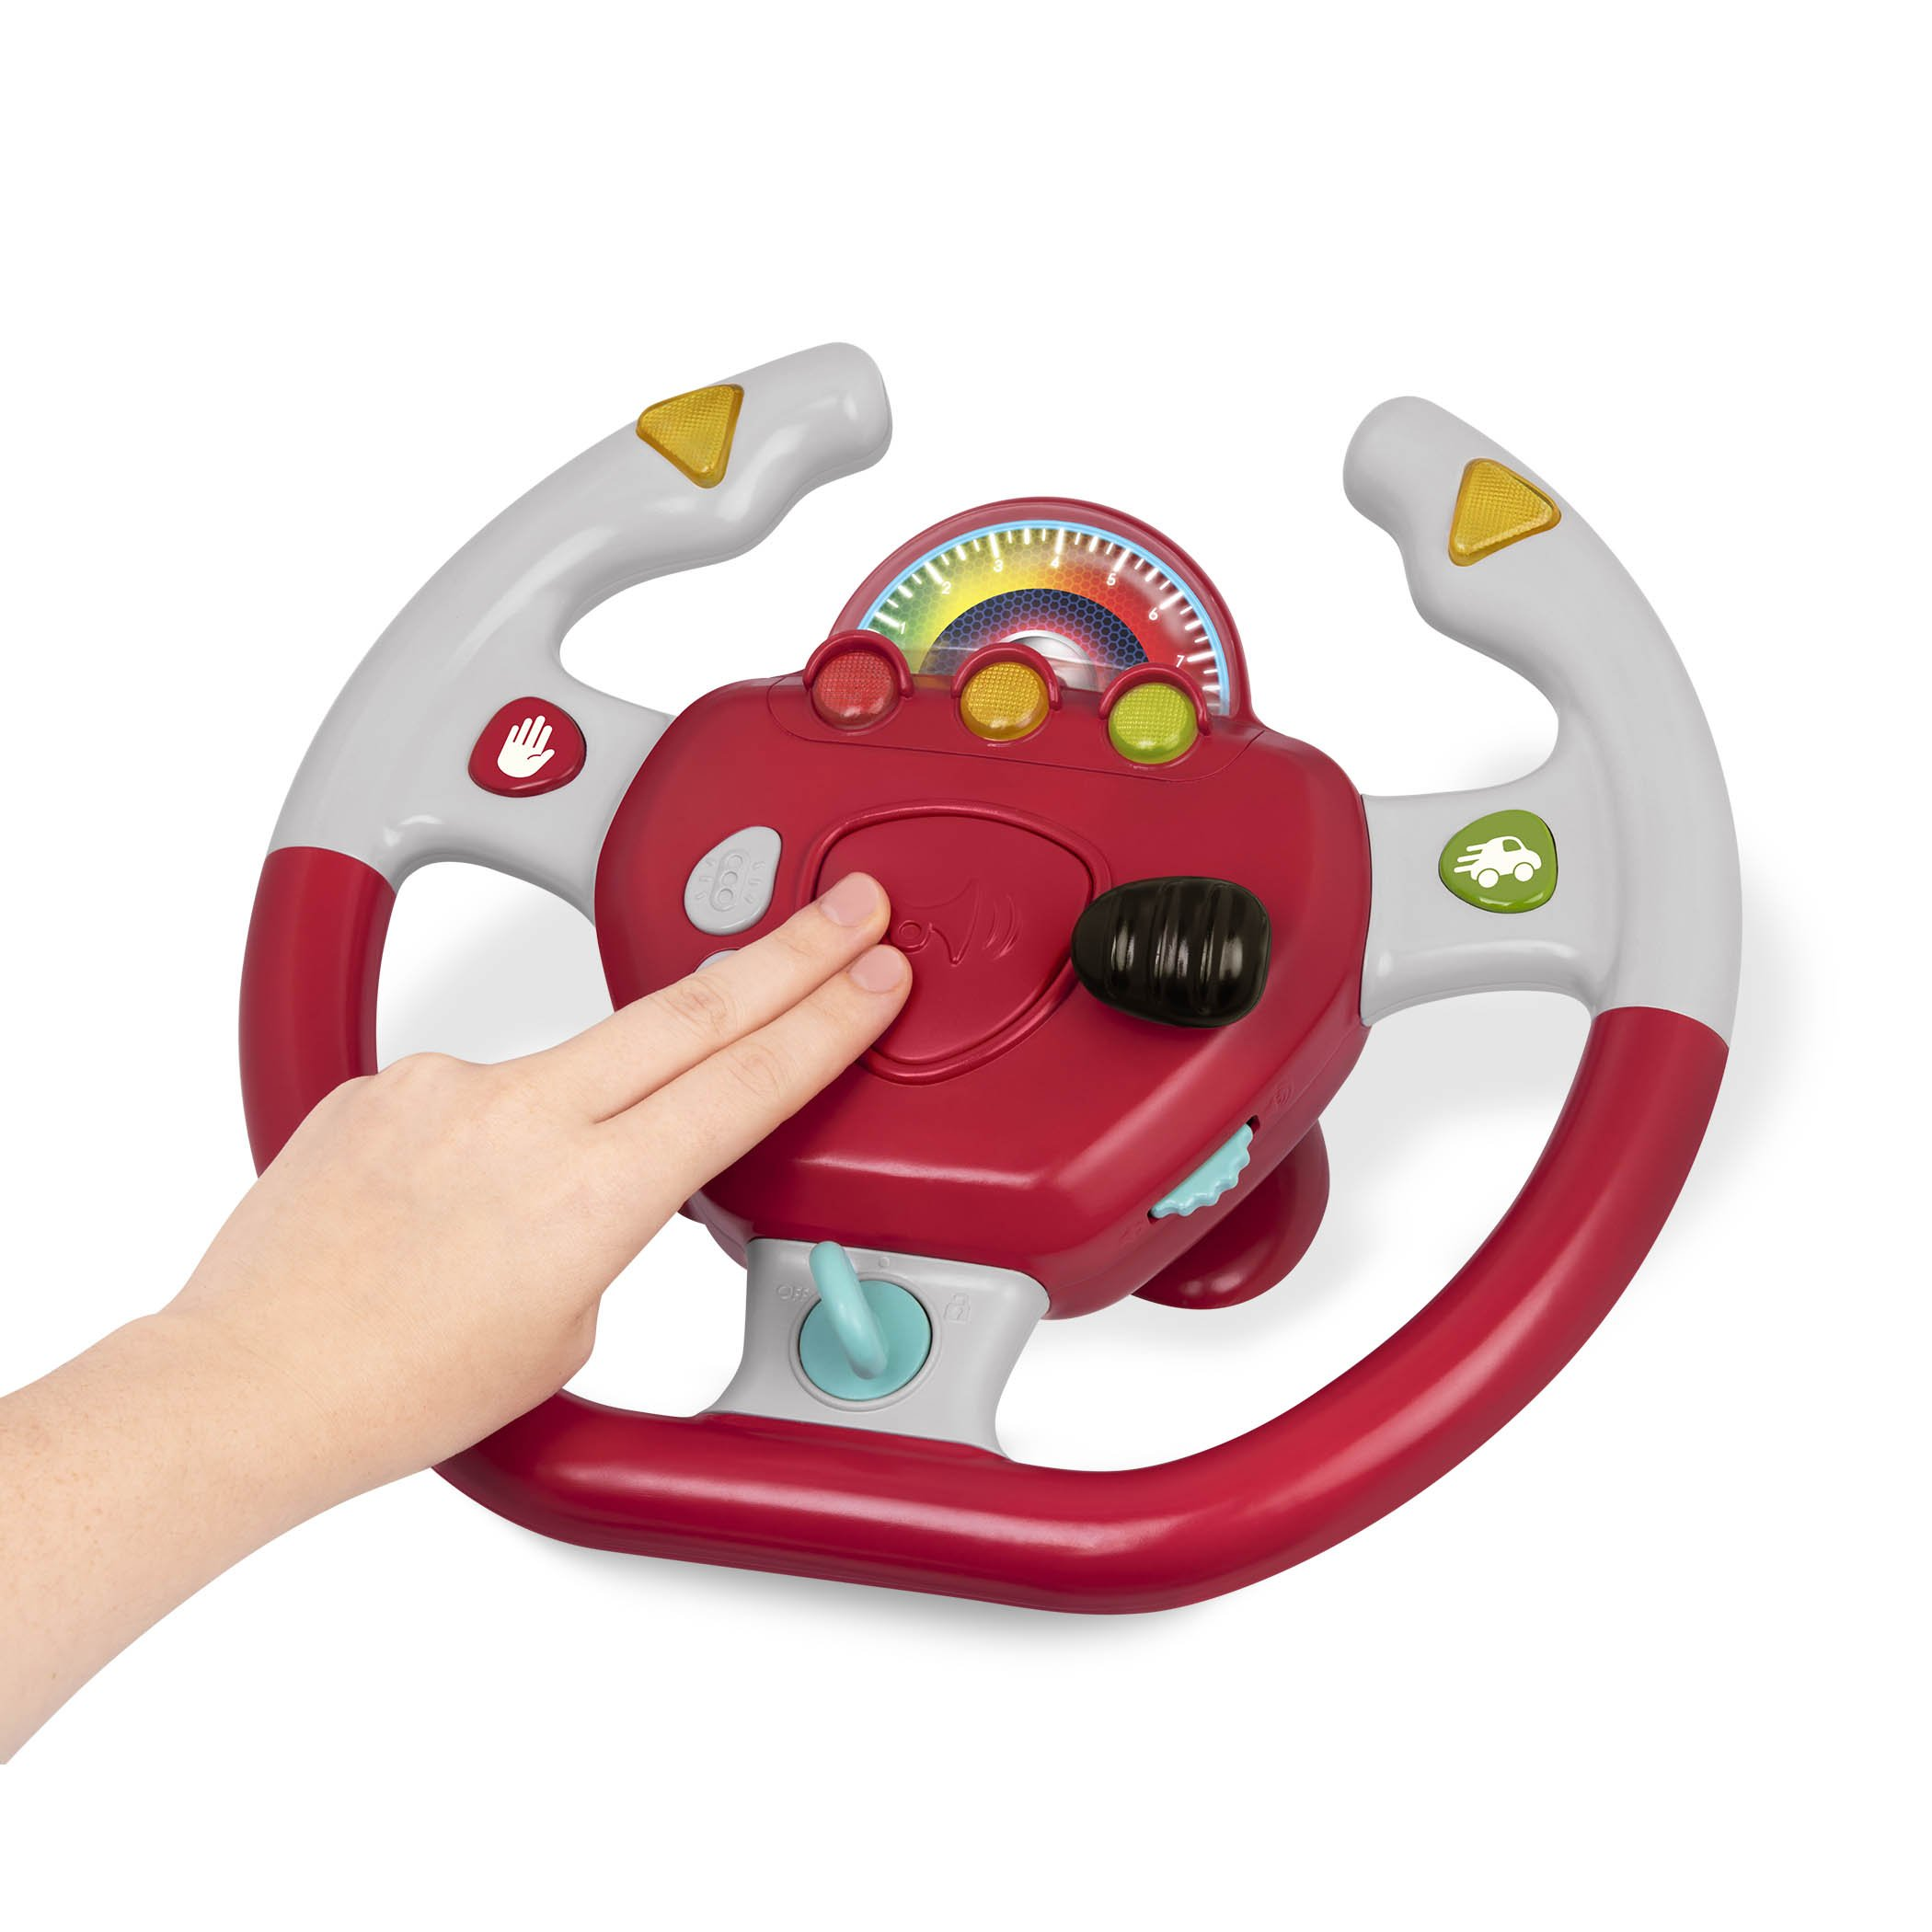 Battat - Geared to Steer Interactive Driving Wheel - Portable Pretend Play Toy Steering Wheel for Kids 2 years + by Battat (Image #3)